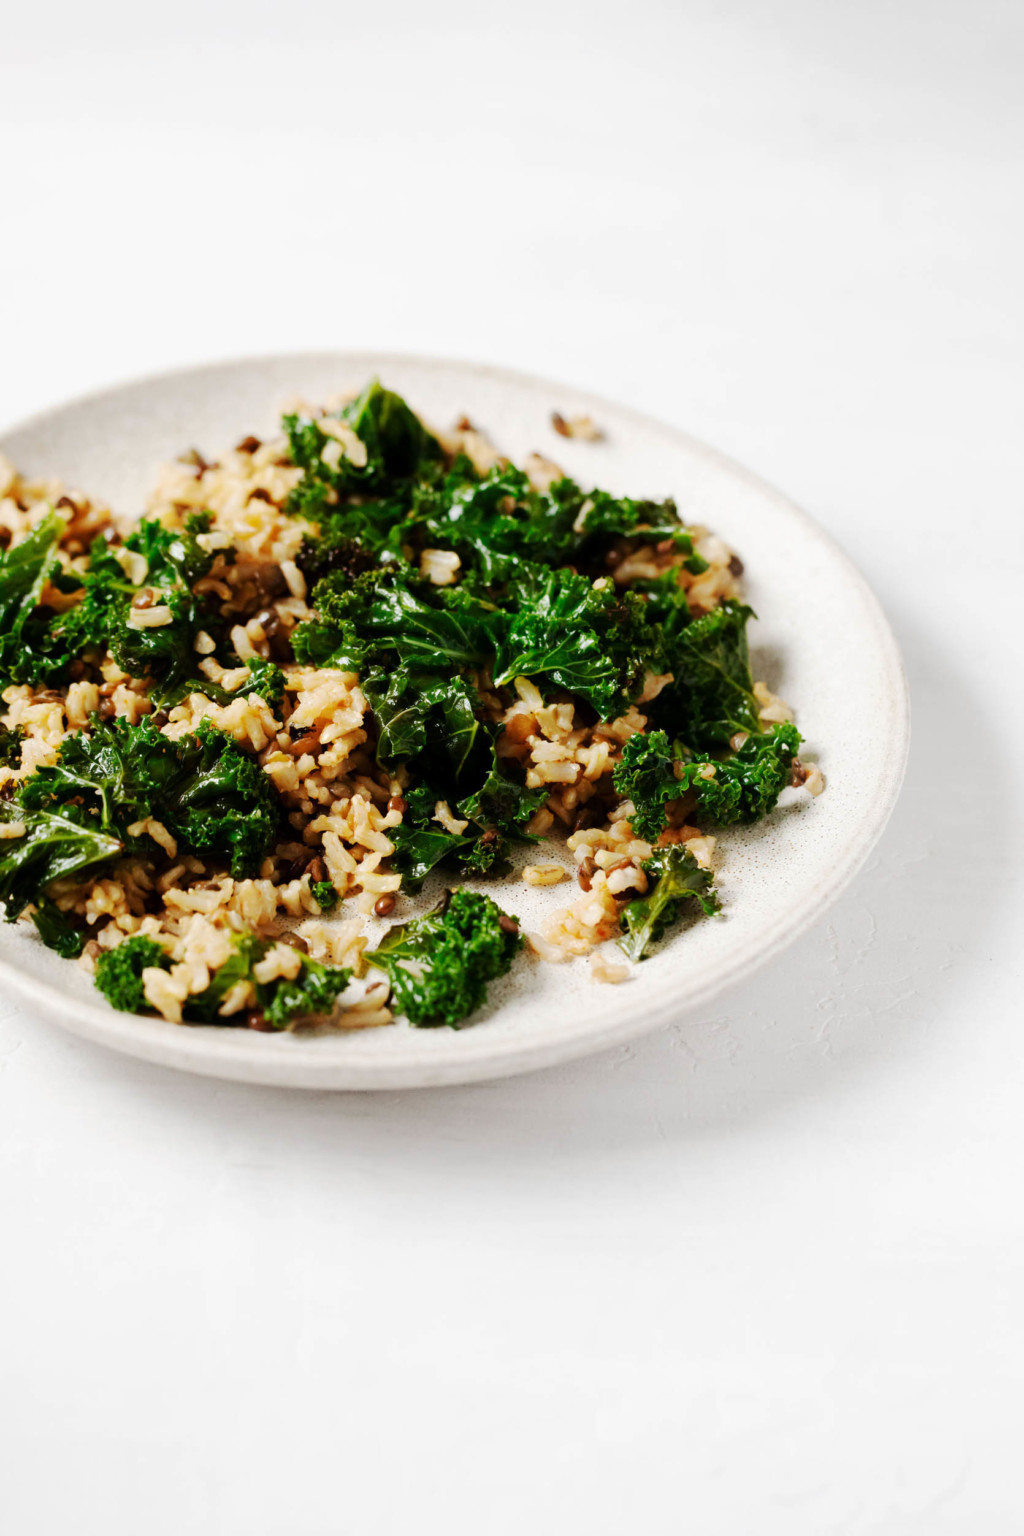 A small serving plate is covered with greens, whole grains, and legumes.